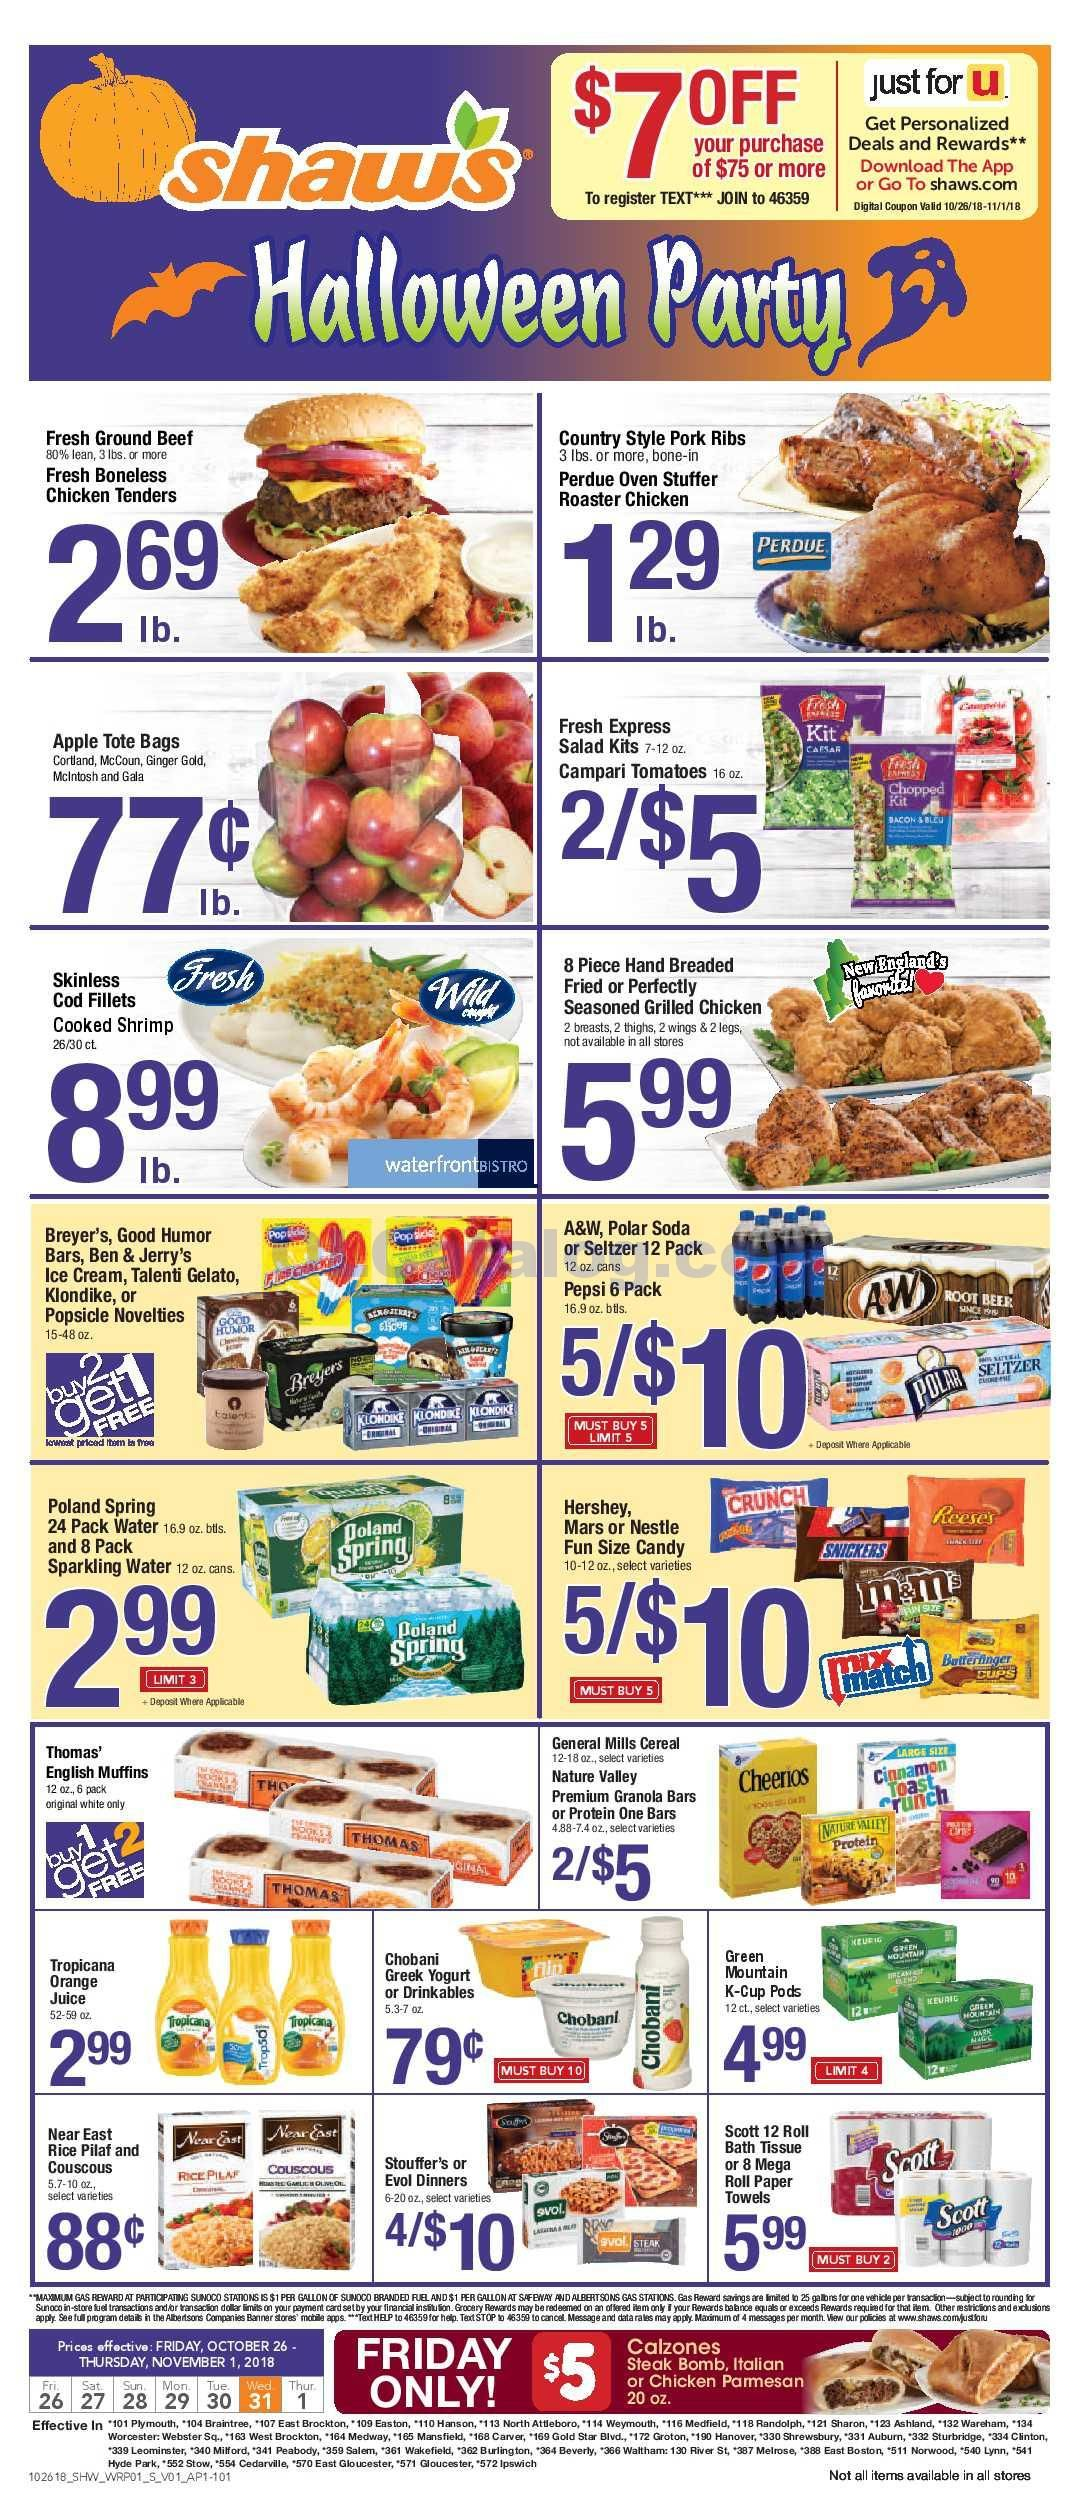 Shaws Circular October 26 November 1 2018 View The Latest Flyer And Weekly Circular Ad For Shaws Here Likewise You Can Weekly Ads Grocery Savings Grocery